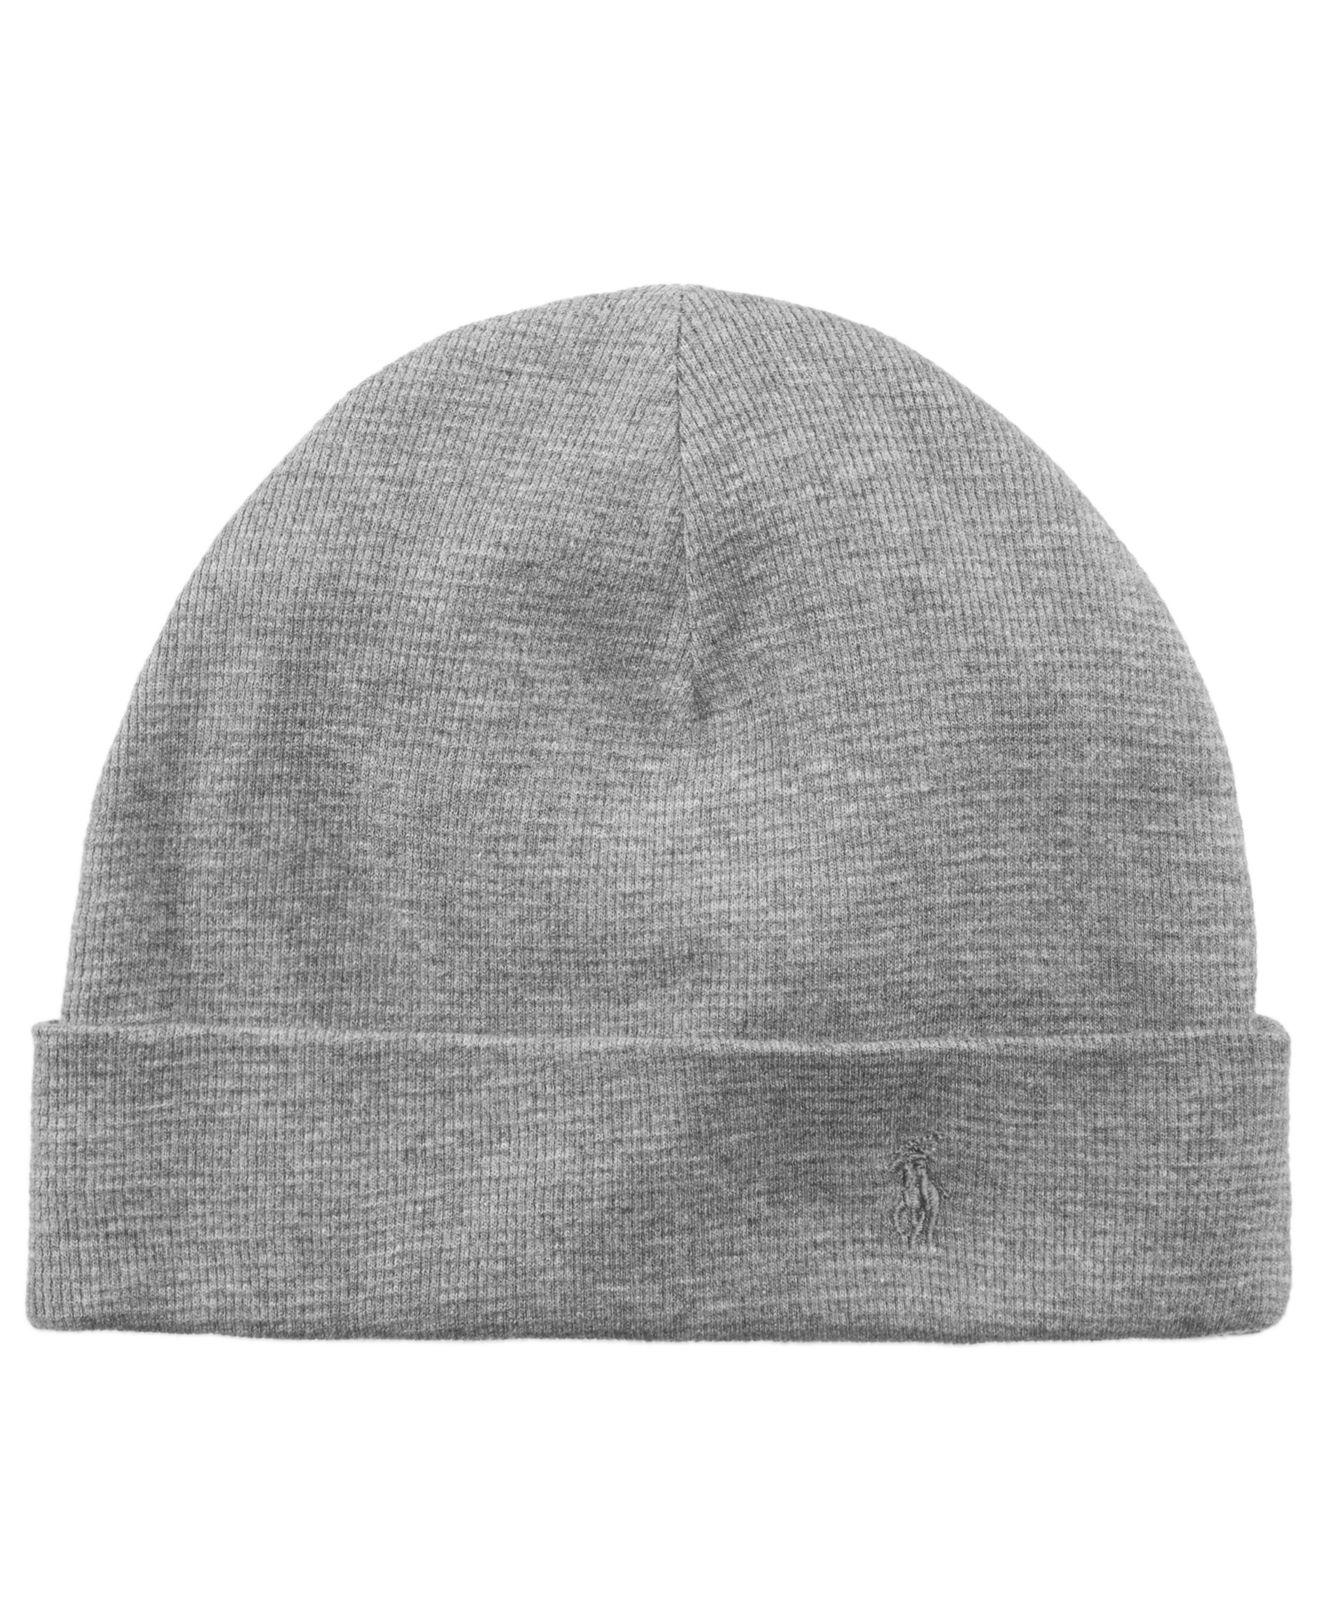 9a6e5251f393a Polo Ralph Lauren Thermal Cuffed Beanie in Gray for Men - Lyst